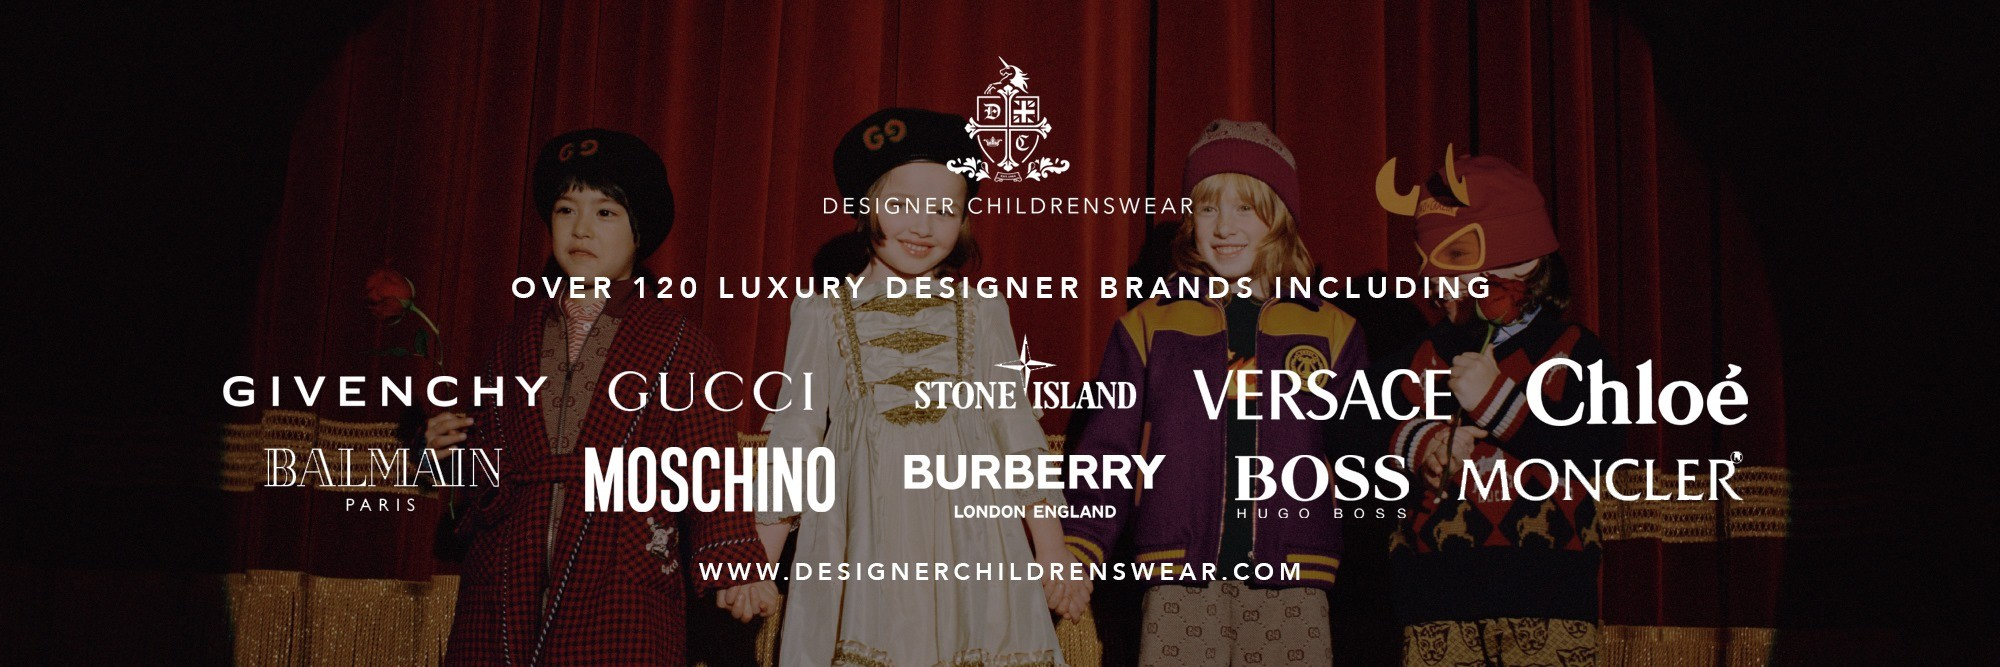 DESIGNERCHILDRENSWEAR: Have a range of children's and baby clothing from a wide selection of the worlds luxury brands